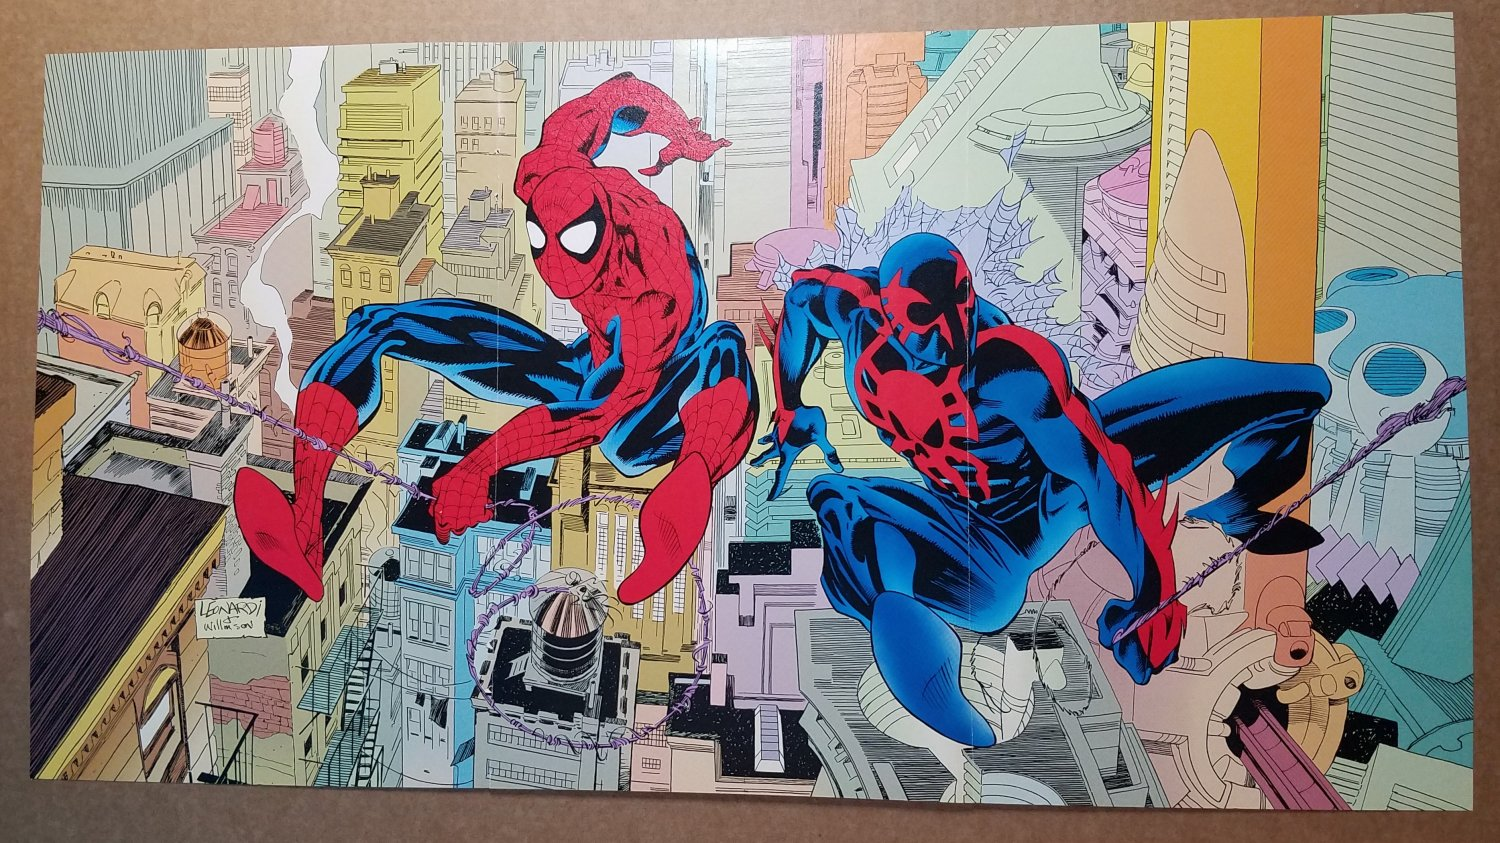 Spider-Man and Spiderman 2099 Marvel Poster by Rick Leonardi and Al Williamson